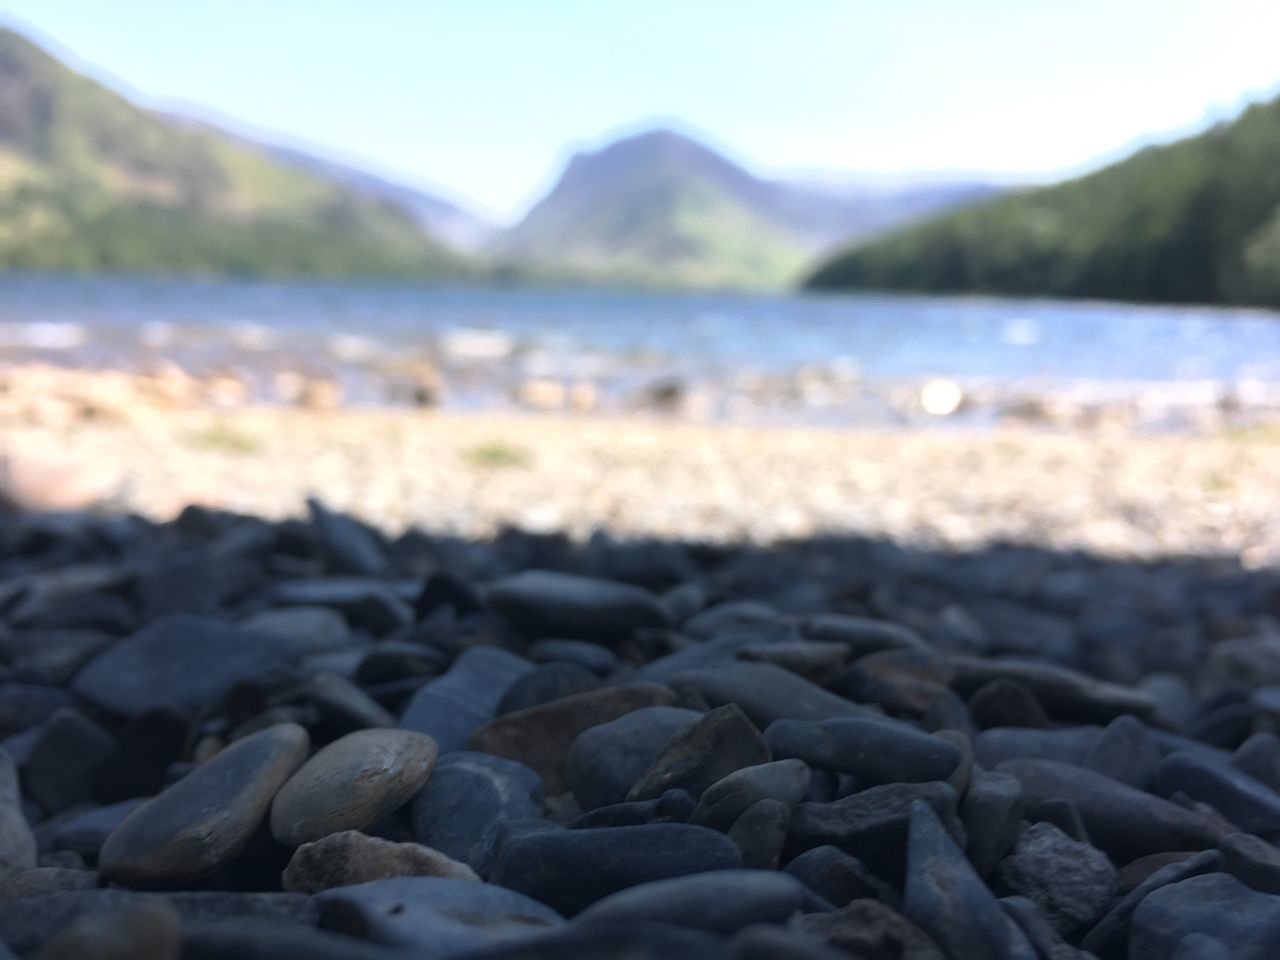 beach, shore, pebble, nature, no people, pebble beach, water, beauty in nature, outdoors, day, tranquility, mountain, sea, sand, scenics, close-up, sky